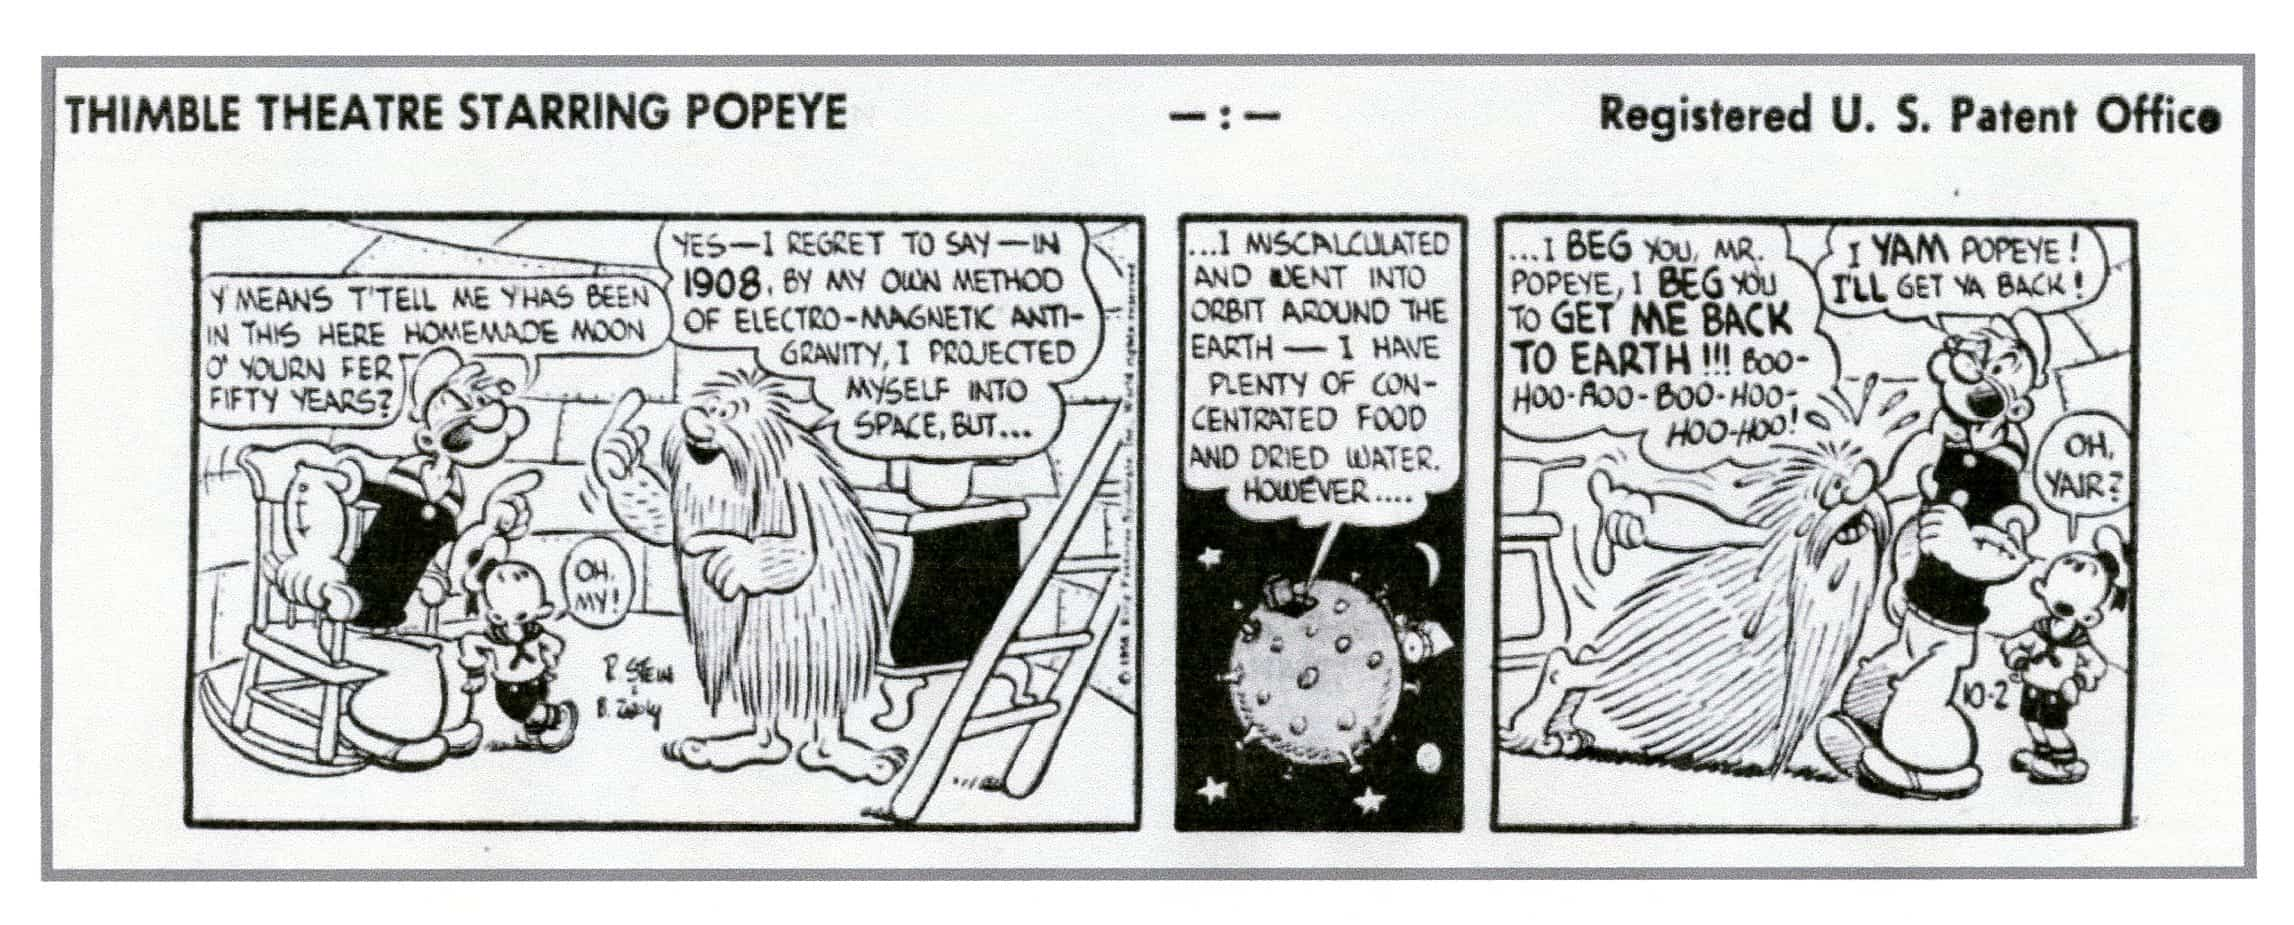 Popeye's travels took him to the Moon! Along with a grown up Swee'pea. From October 2, 1958.